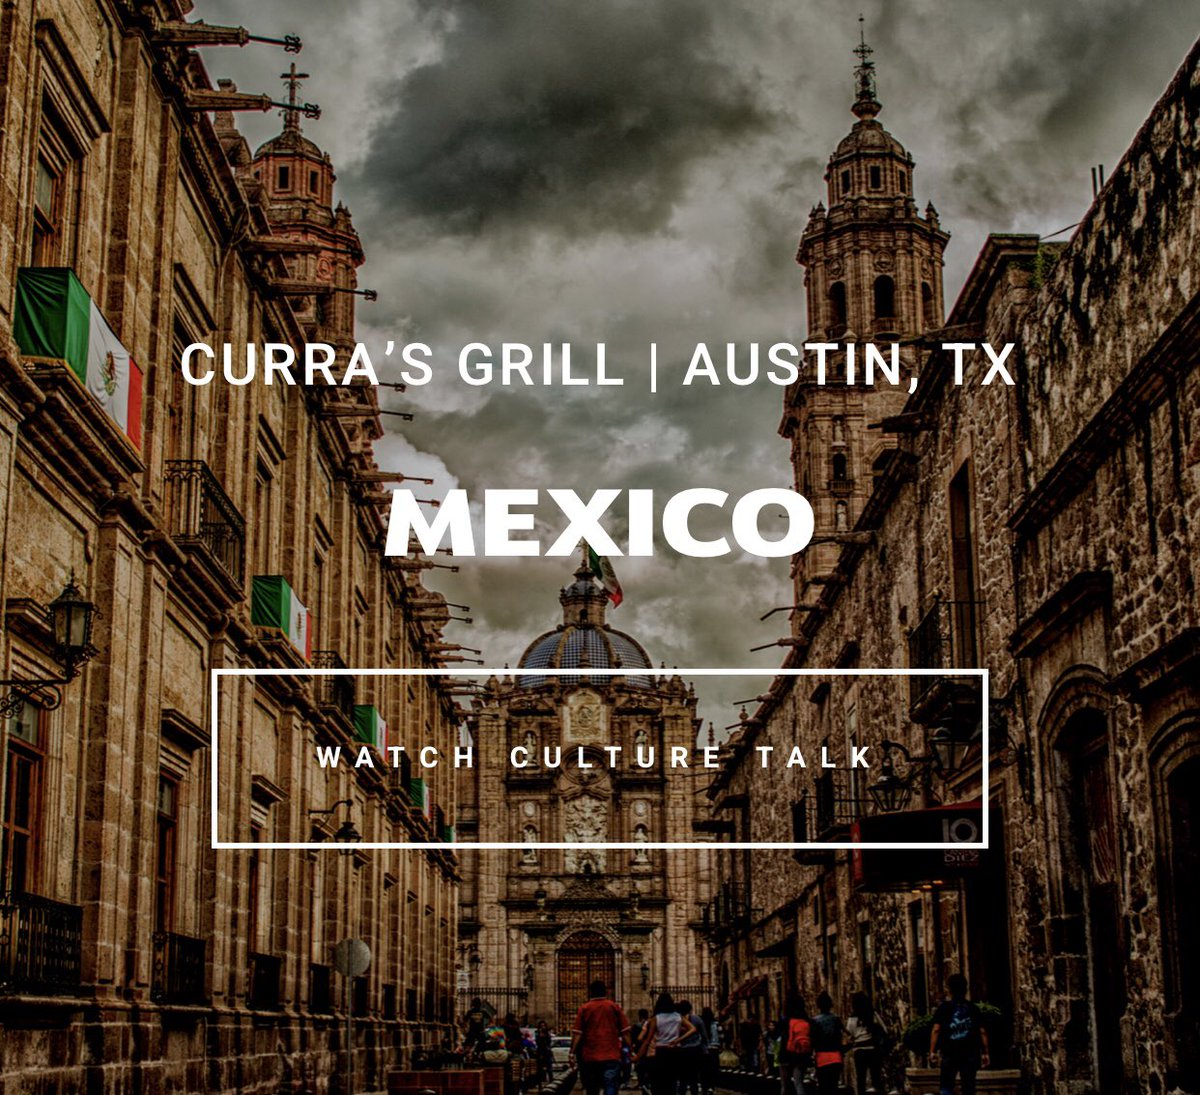 Get to know Mexico with culture talk host Jorge Garcia, through his family history in Ranching; his mother's recipes, homemade tortillas, transporting you through the craft of @CurrasGrill in Austin, TX.  Watch Culture Talk: https://t.co/Ge1amOPKox  #austin #atxeats #atxfoodies https://t.co/eplJxiETko